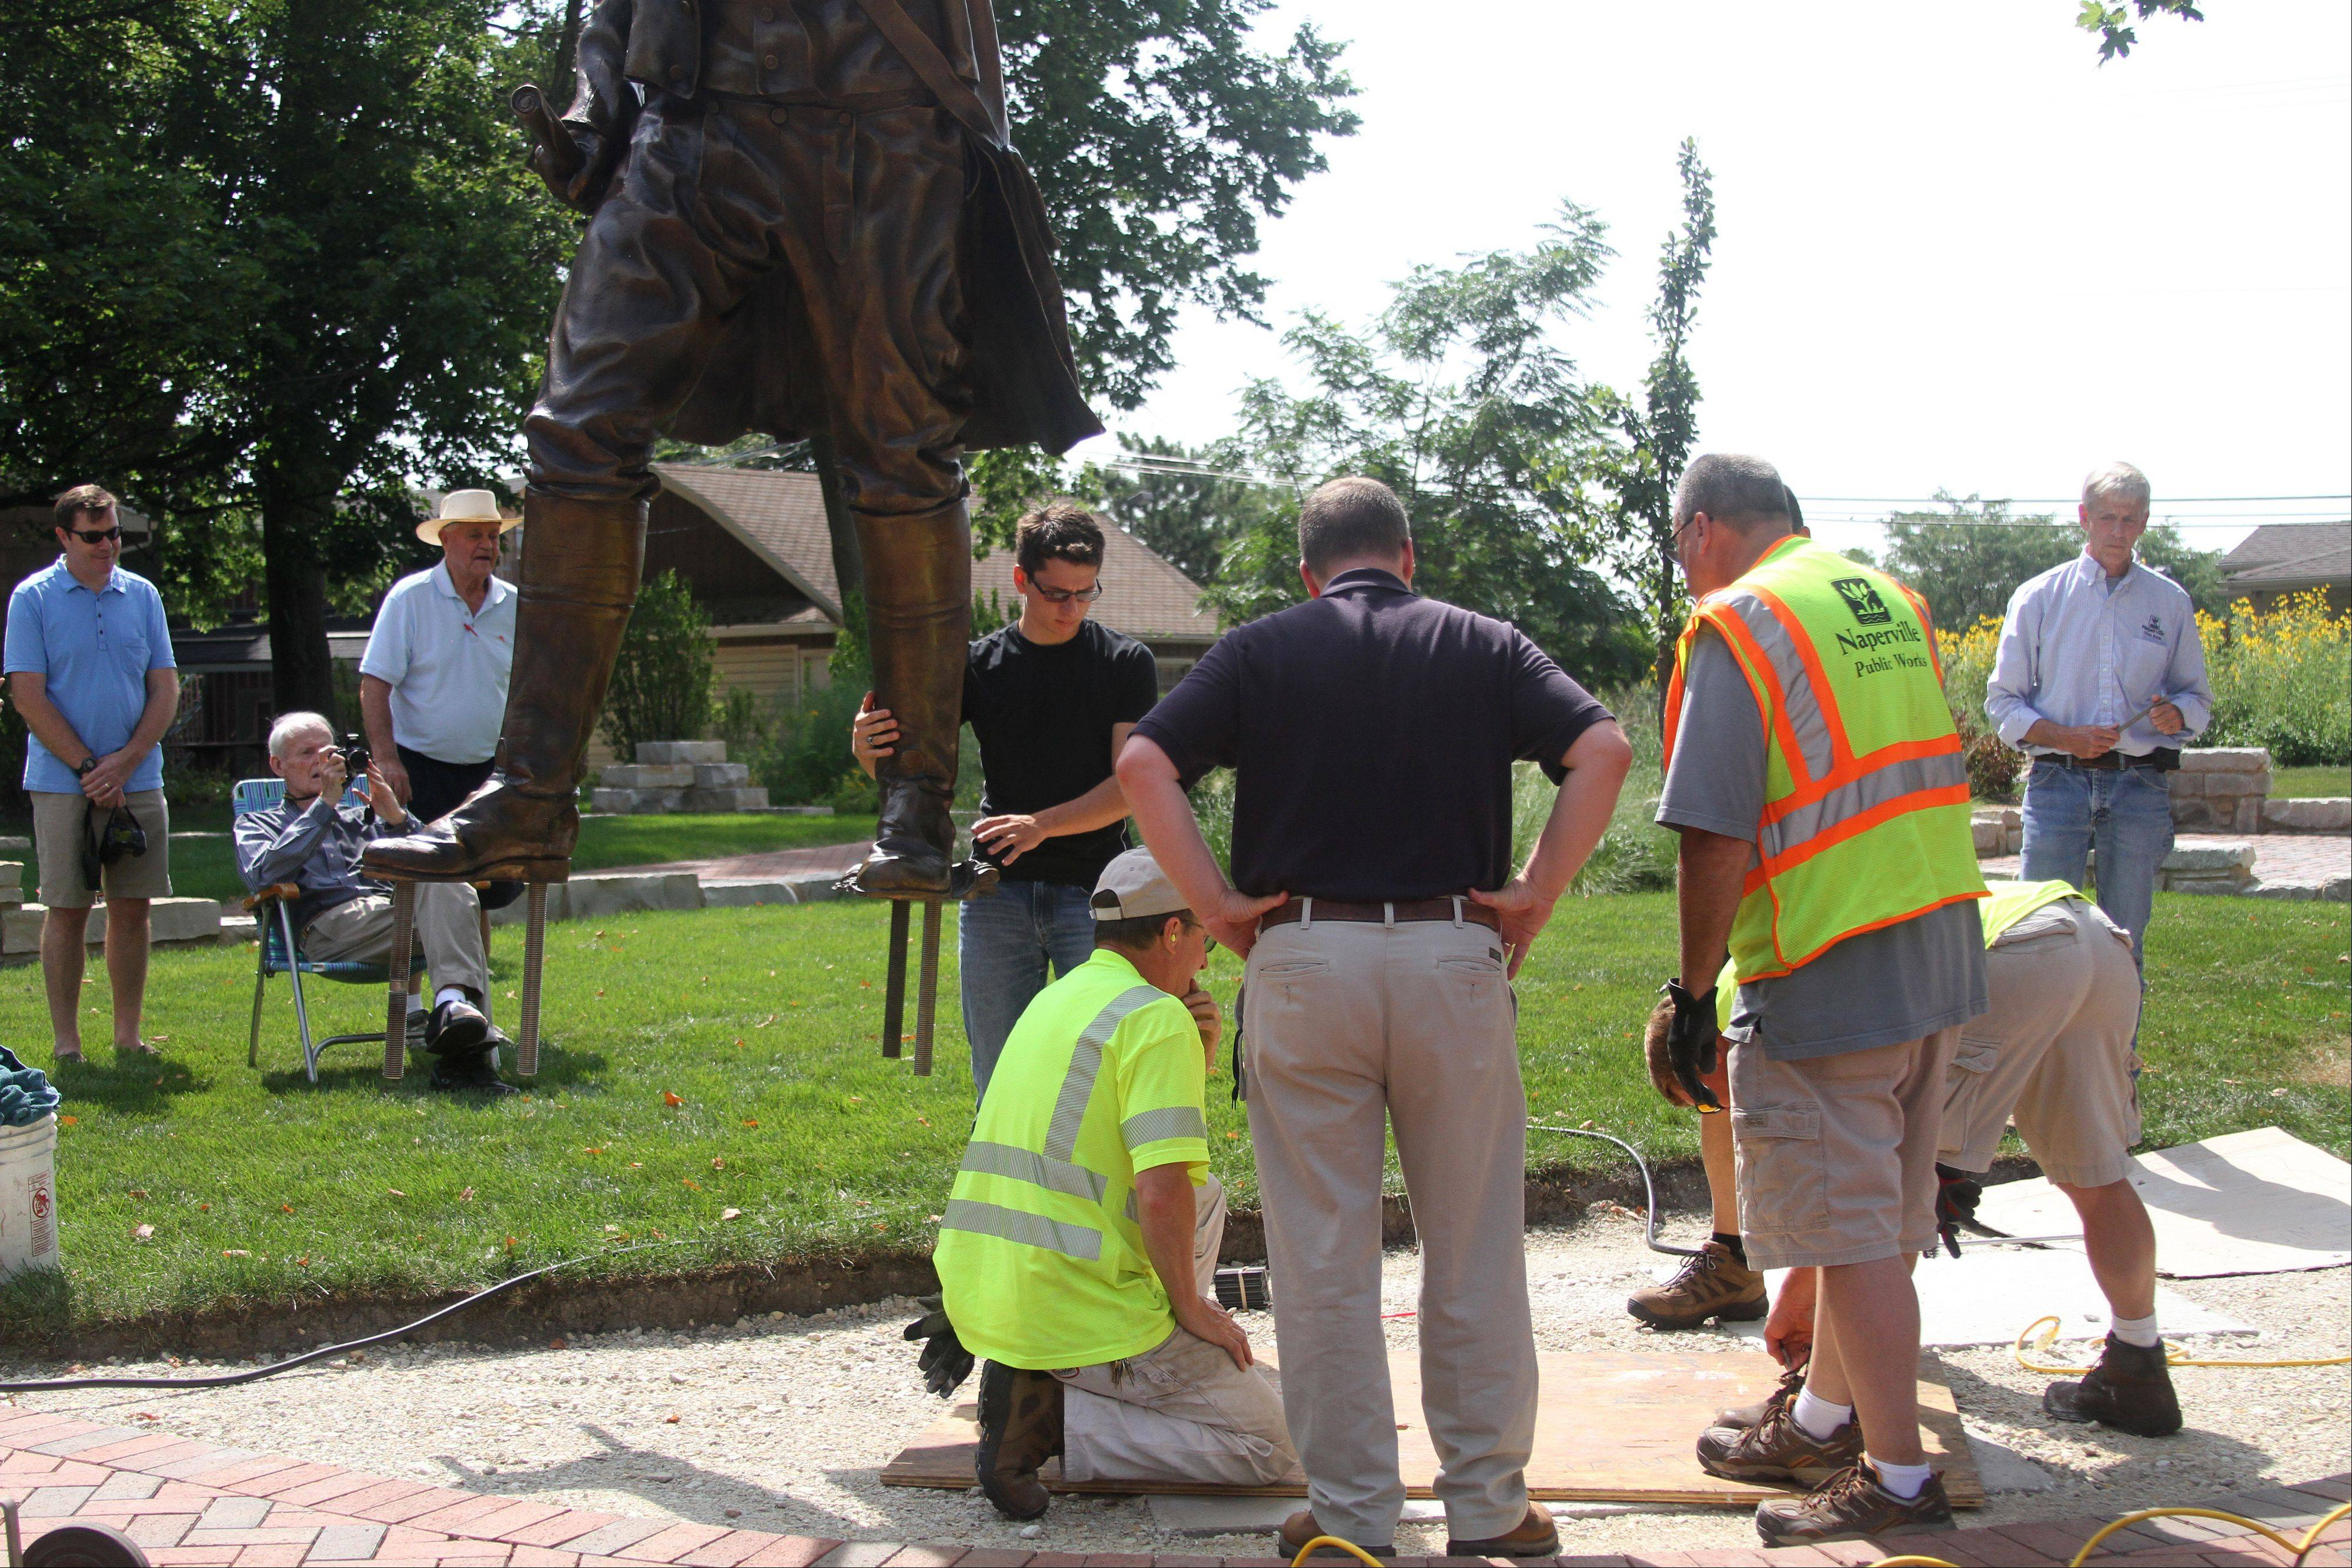 Public works crews drill holes Friday to secure a sculpture of Naperville founder Joseph Naper at the Naper Homestead site near downtown.